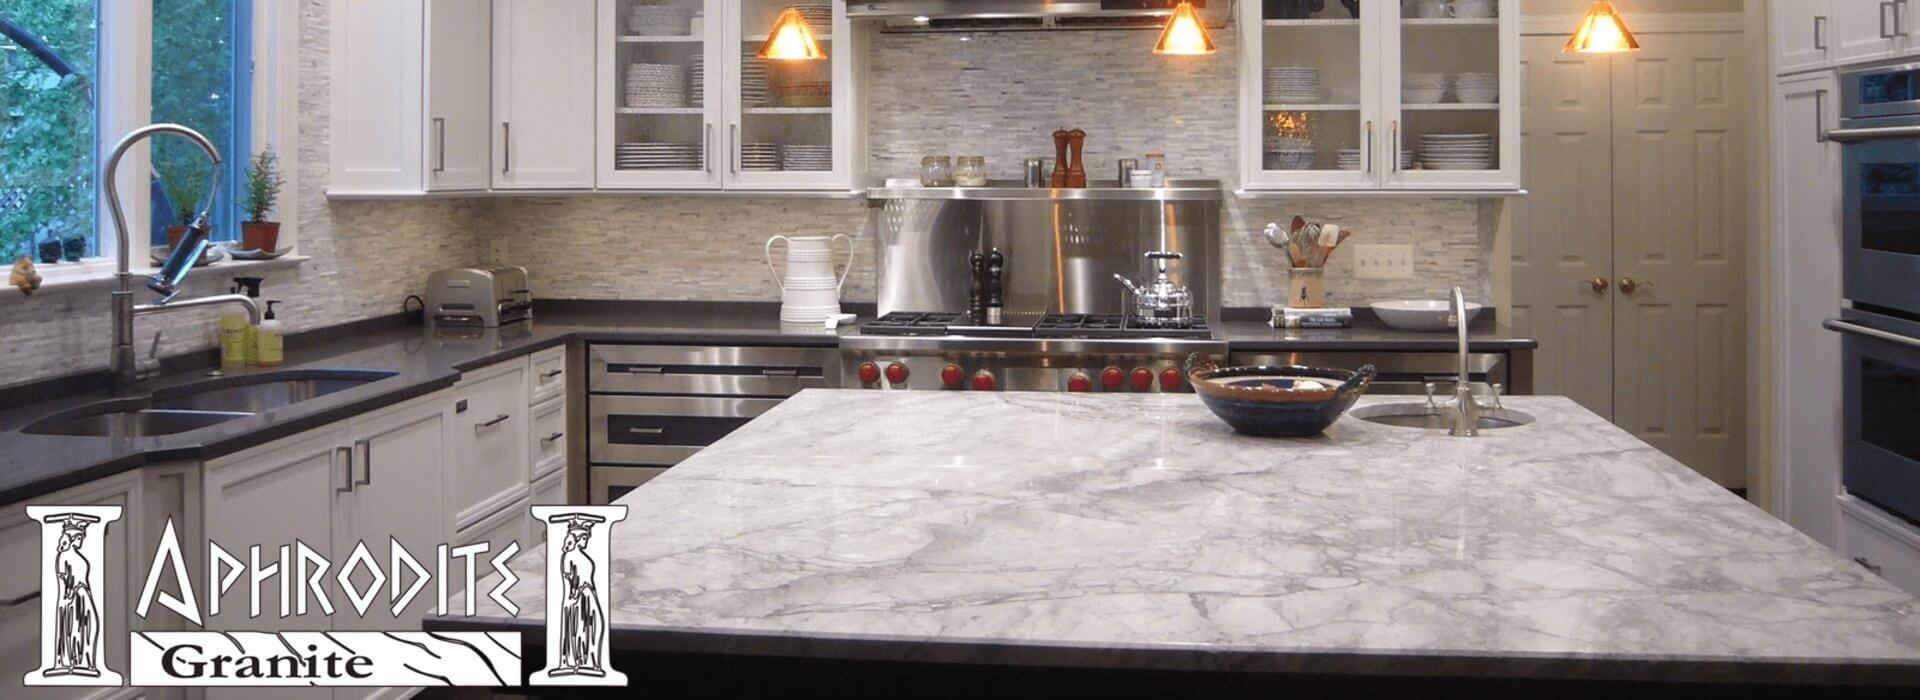 of tile copy ltd care maintenance dsc countertop marble slide western countertops second granite